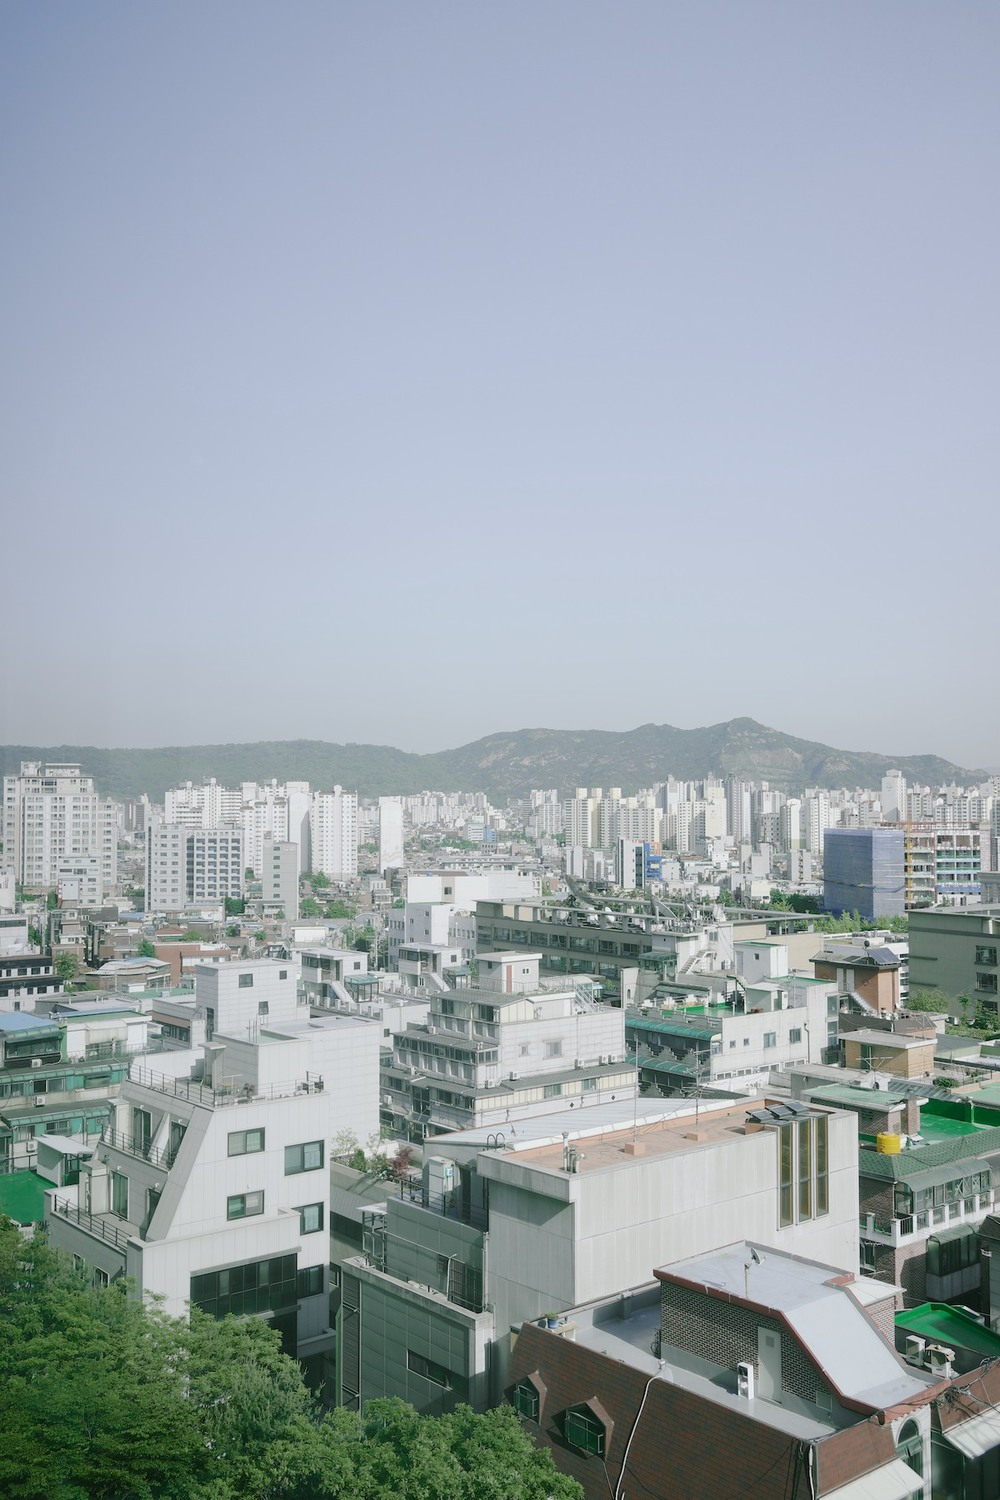 Seoul, Korea - outdoor natural light